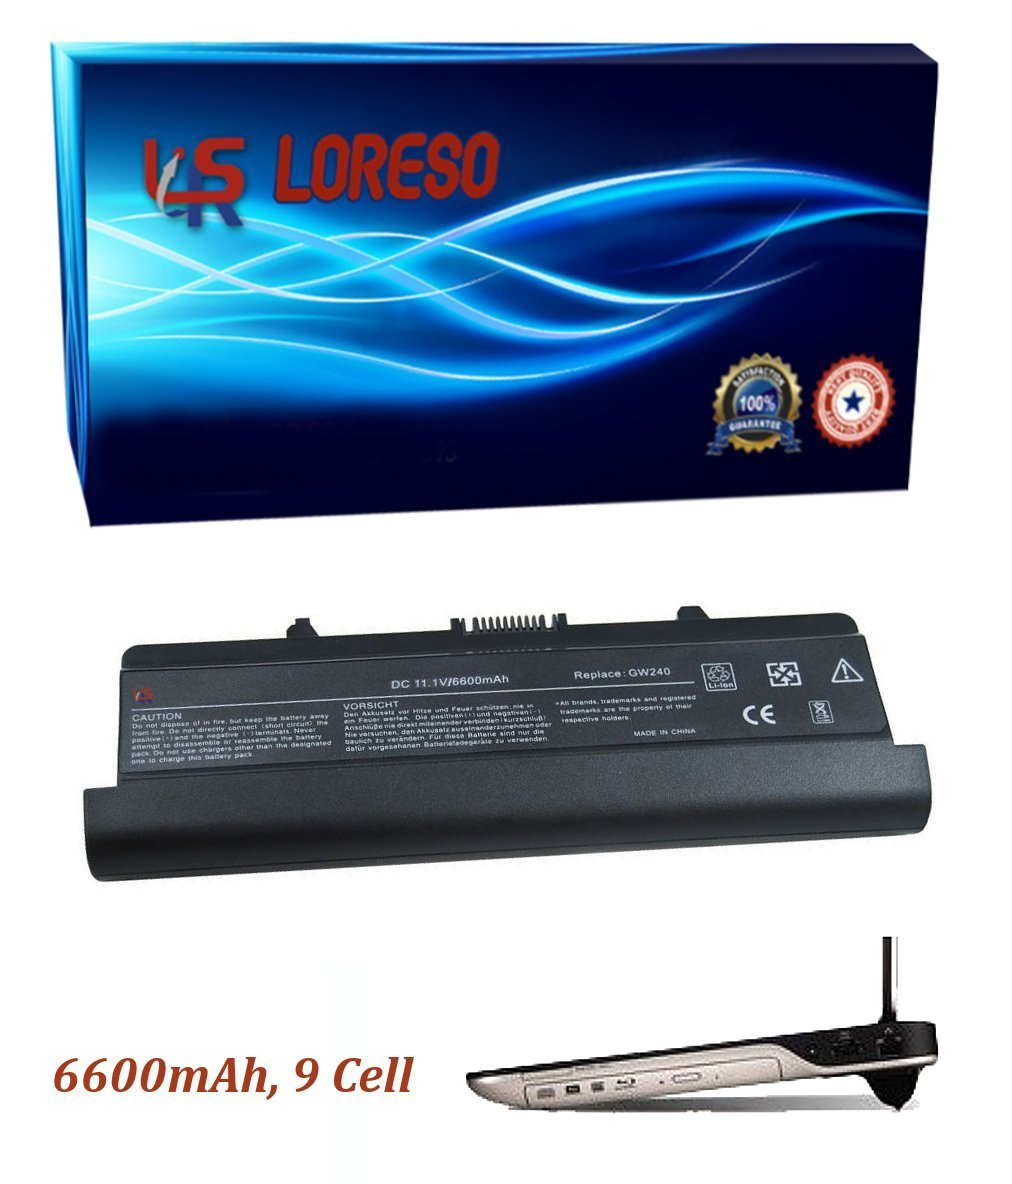 Laptop Battery Dell Inspiron 1546 XR682 0XR682 OXR682 WK381 0WK381 OWK381 (Loreso Replacement Part) - 6600mAh, 9 Cell